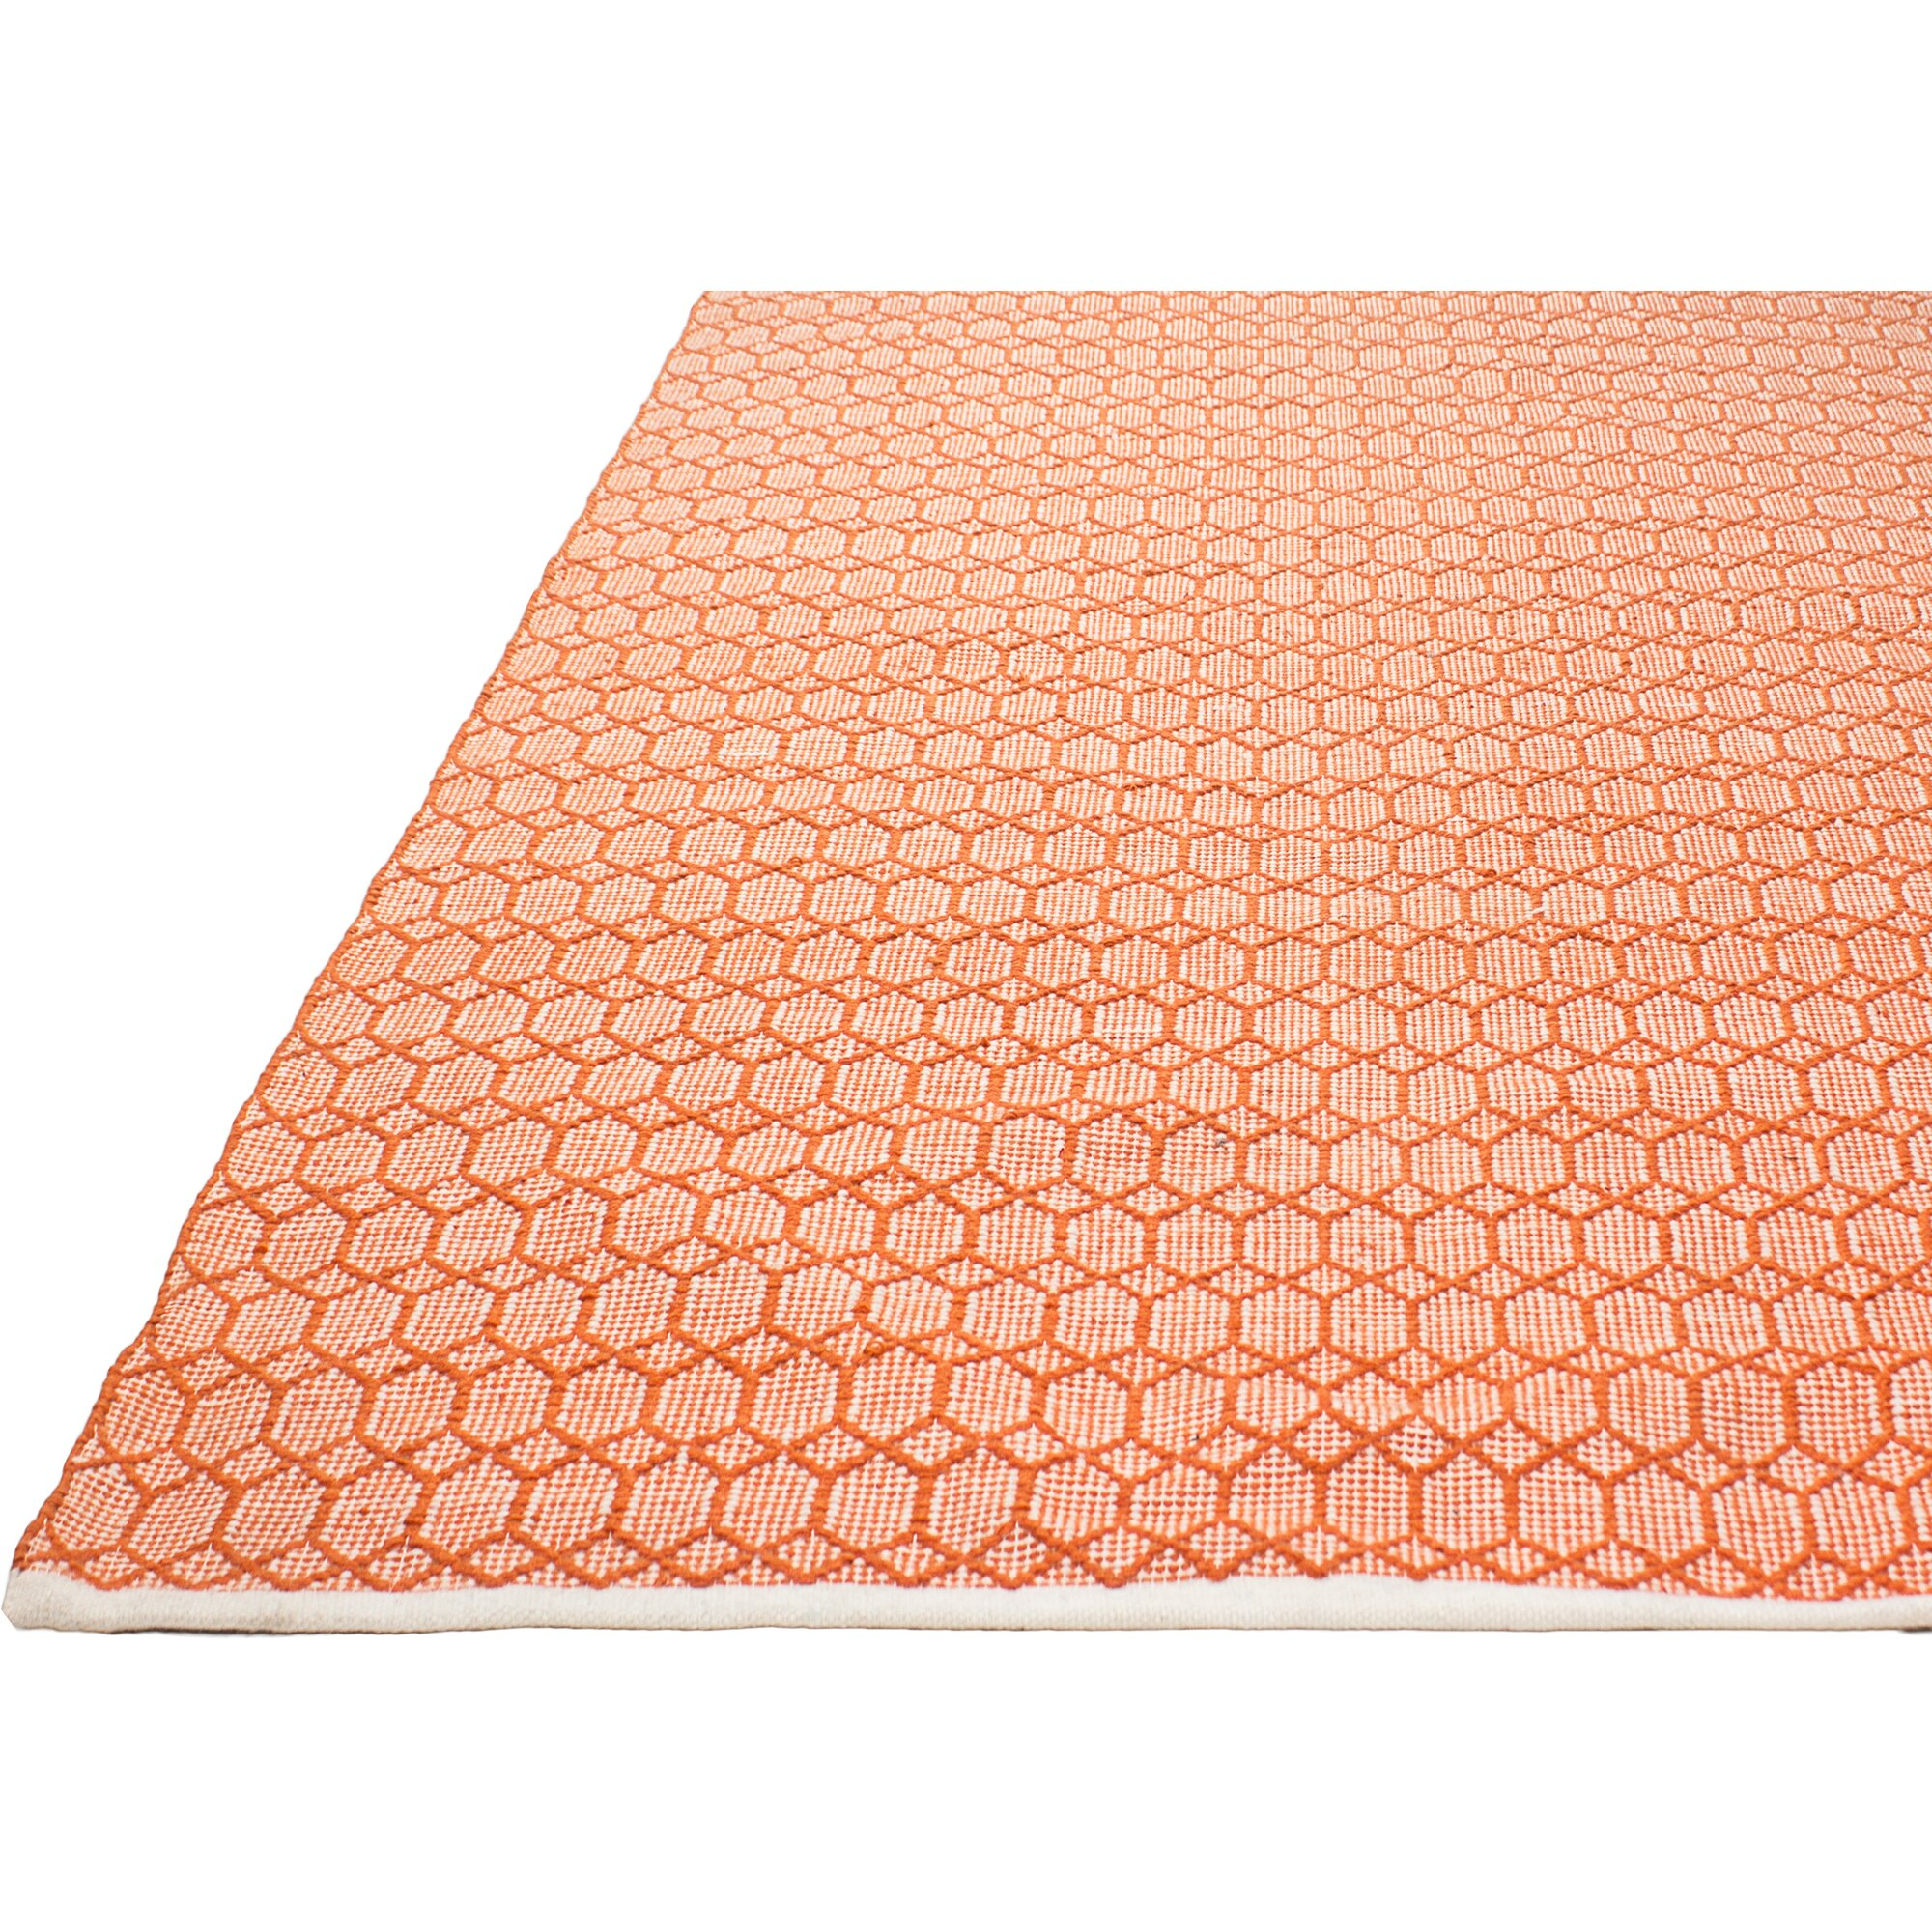 Outdoor Rugs ly Buynowornever Sale Indoor Outdoor Rugs ly